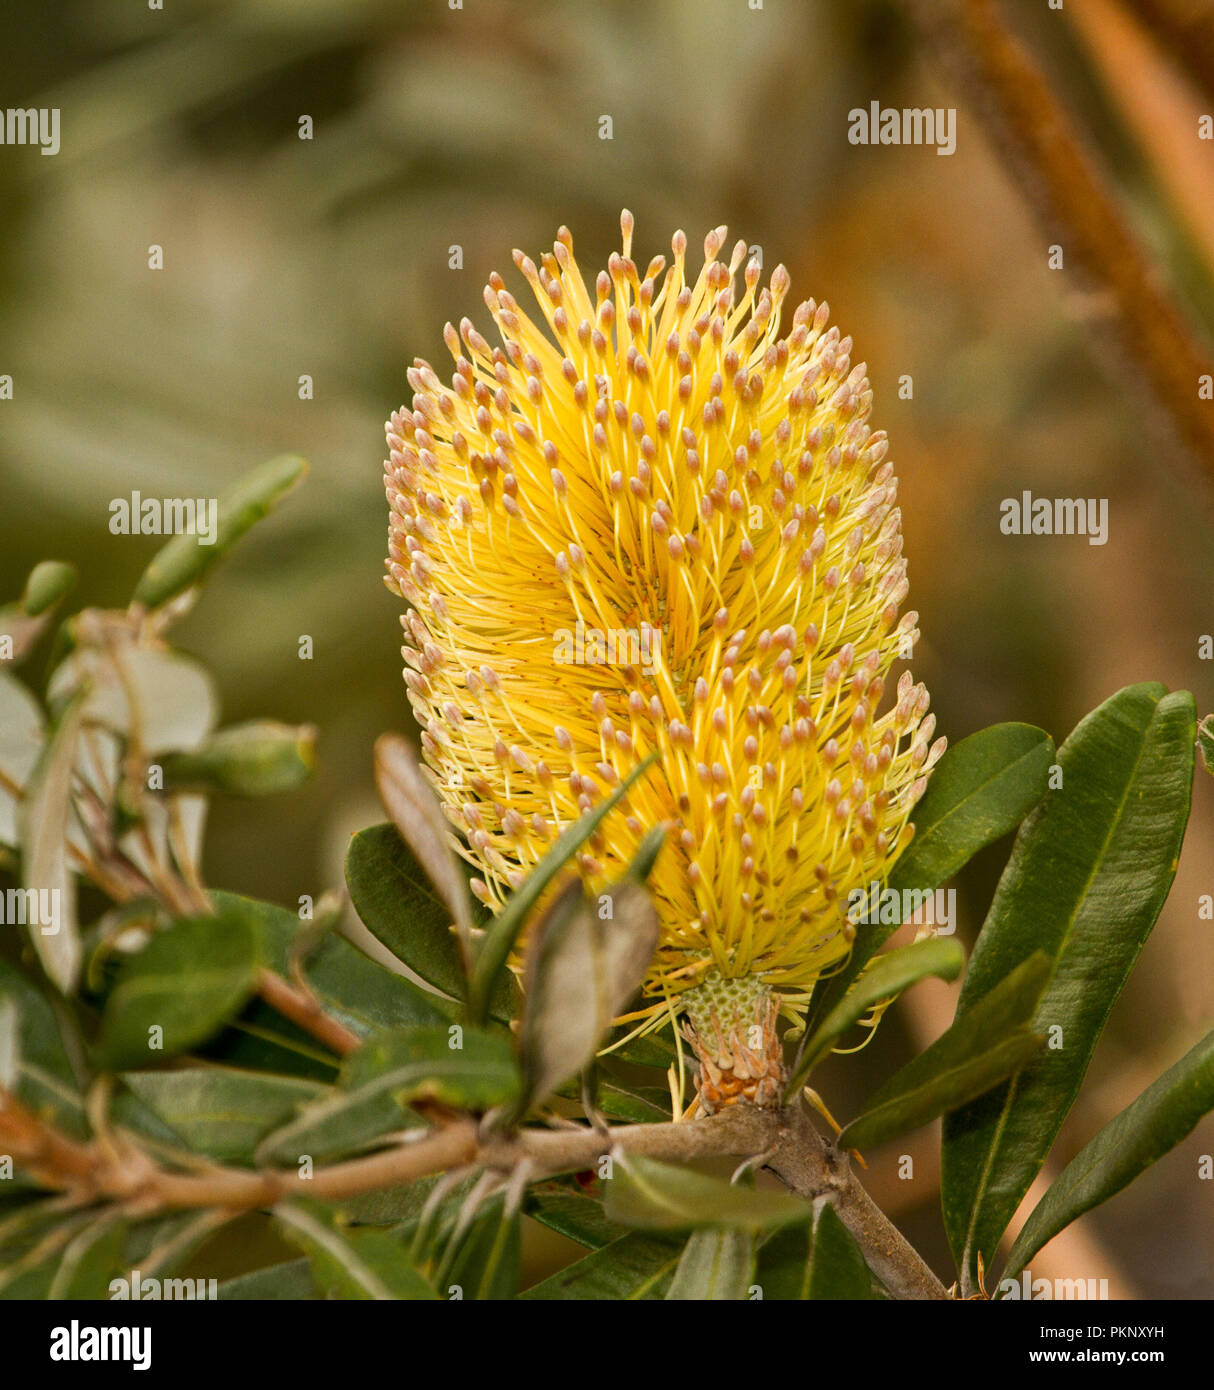 Australian Wildflowers Large And Stunning Golden Yellow Flower And